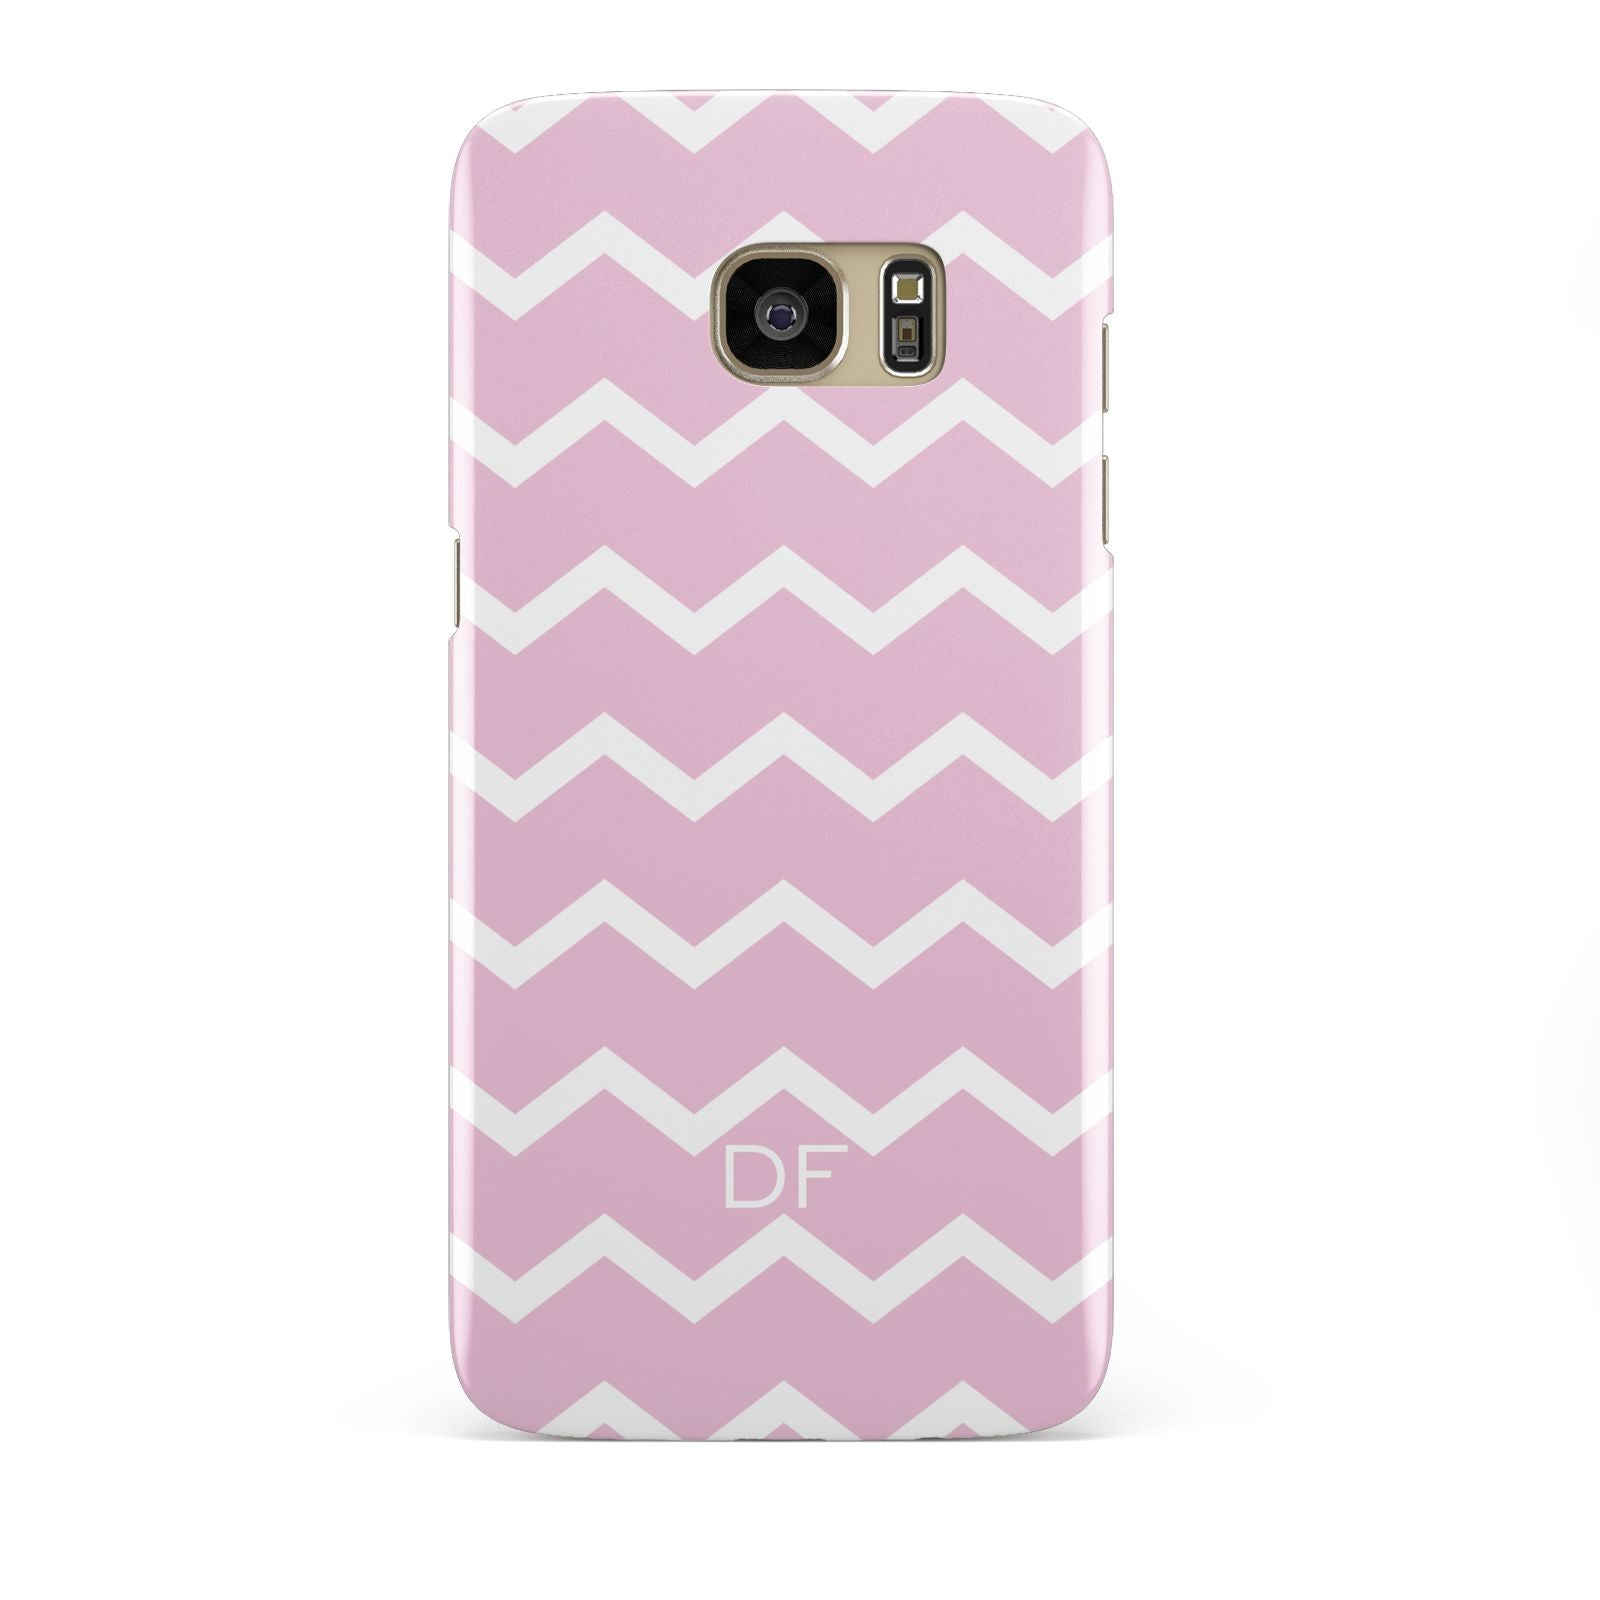 Personalised Chevron Pink Samsung Galaxy S7 Edge Case